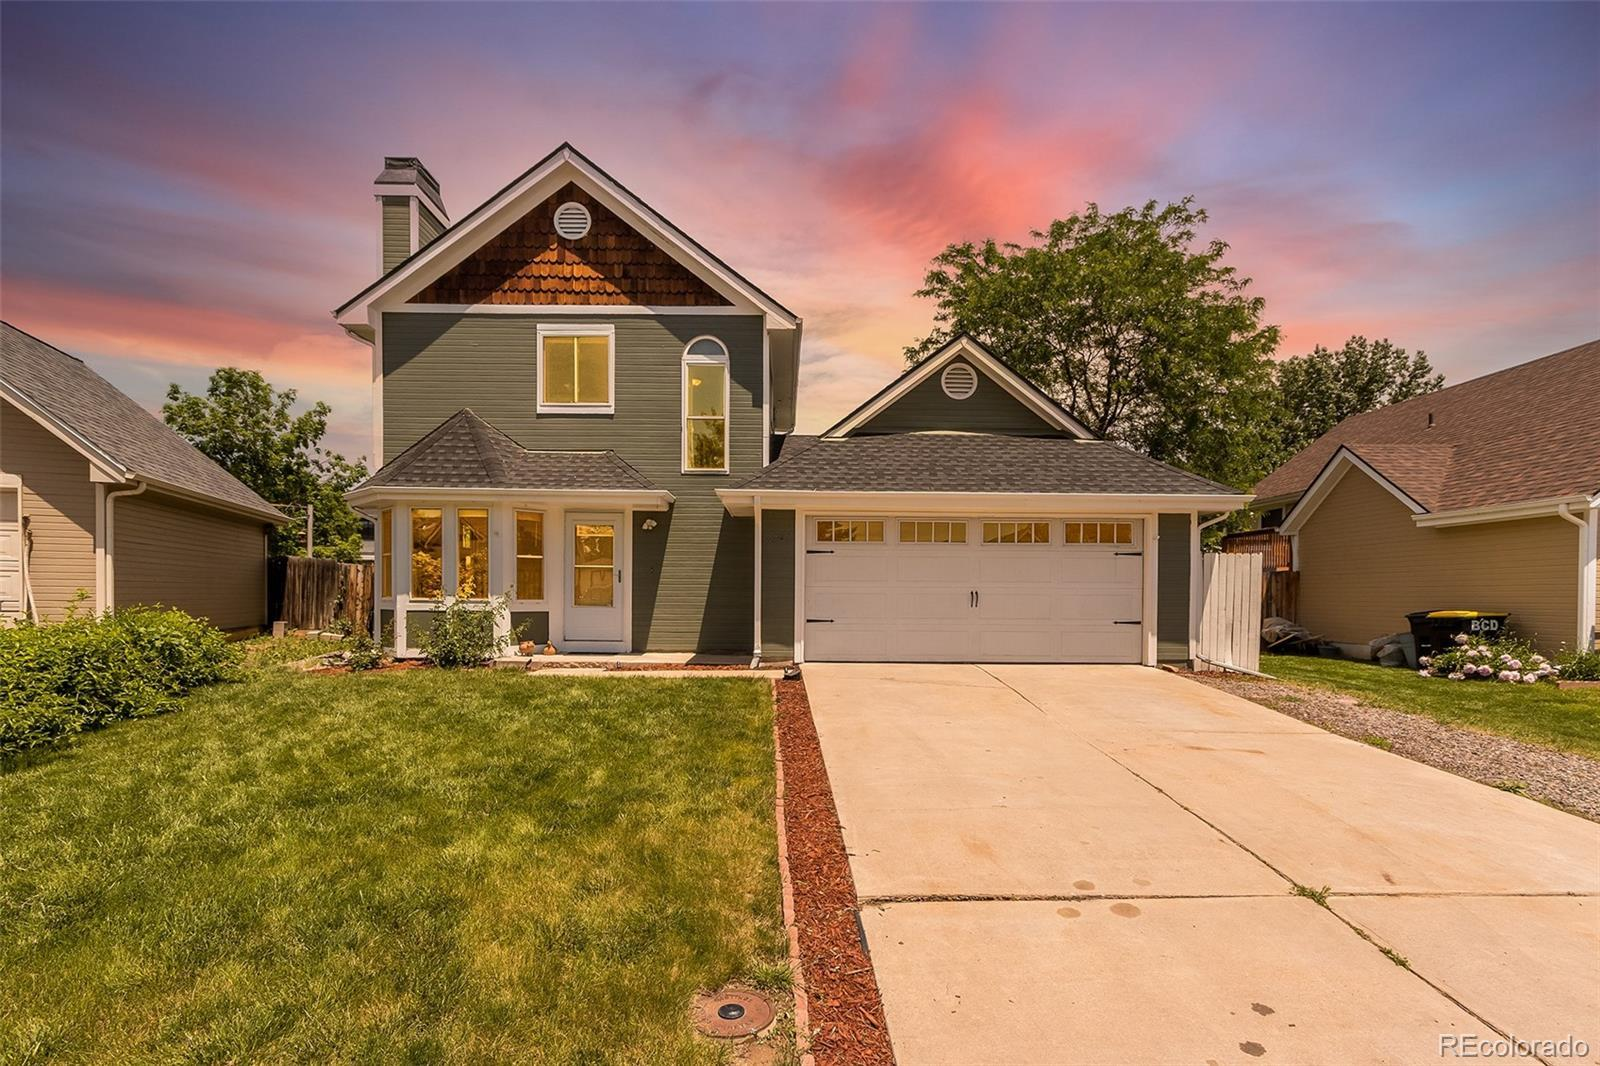 1347 W 135th Avenue, Westminster, CO 80234 - #: 7919058